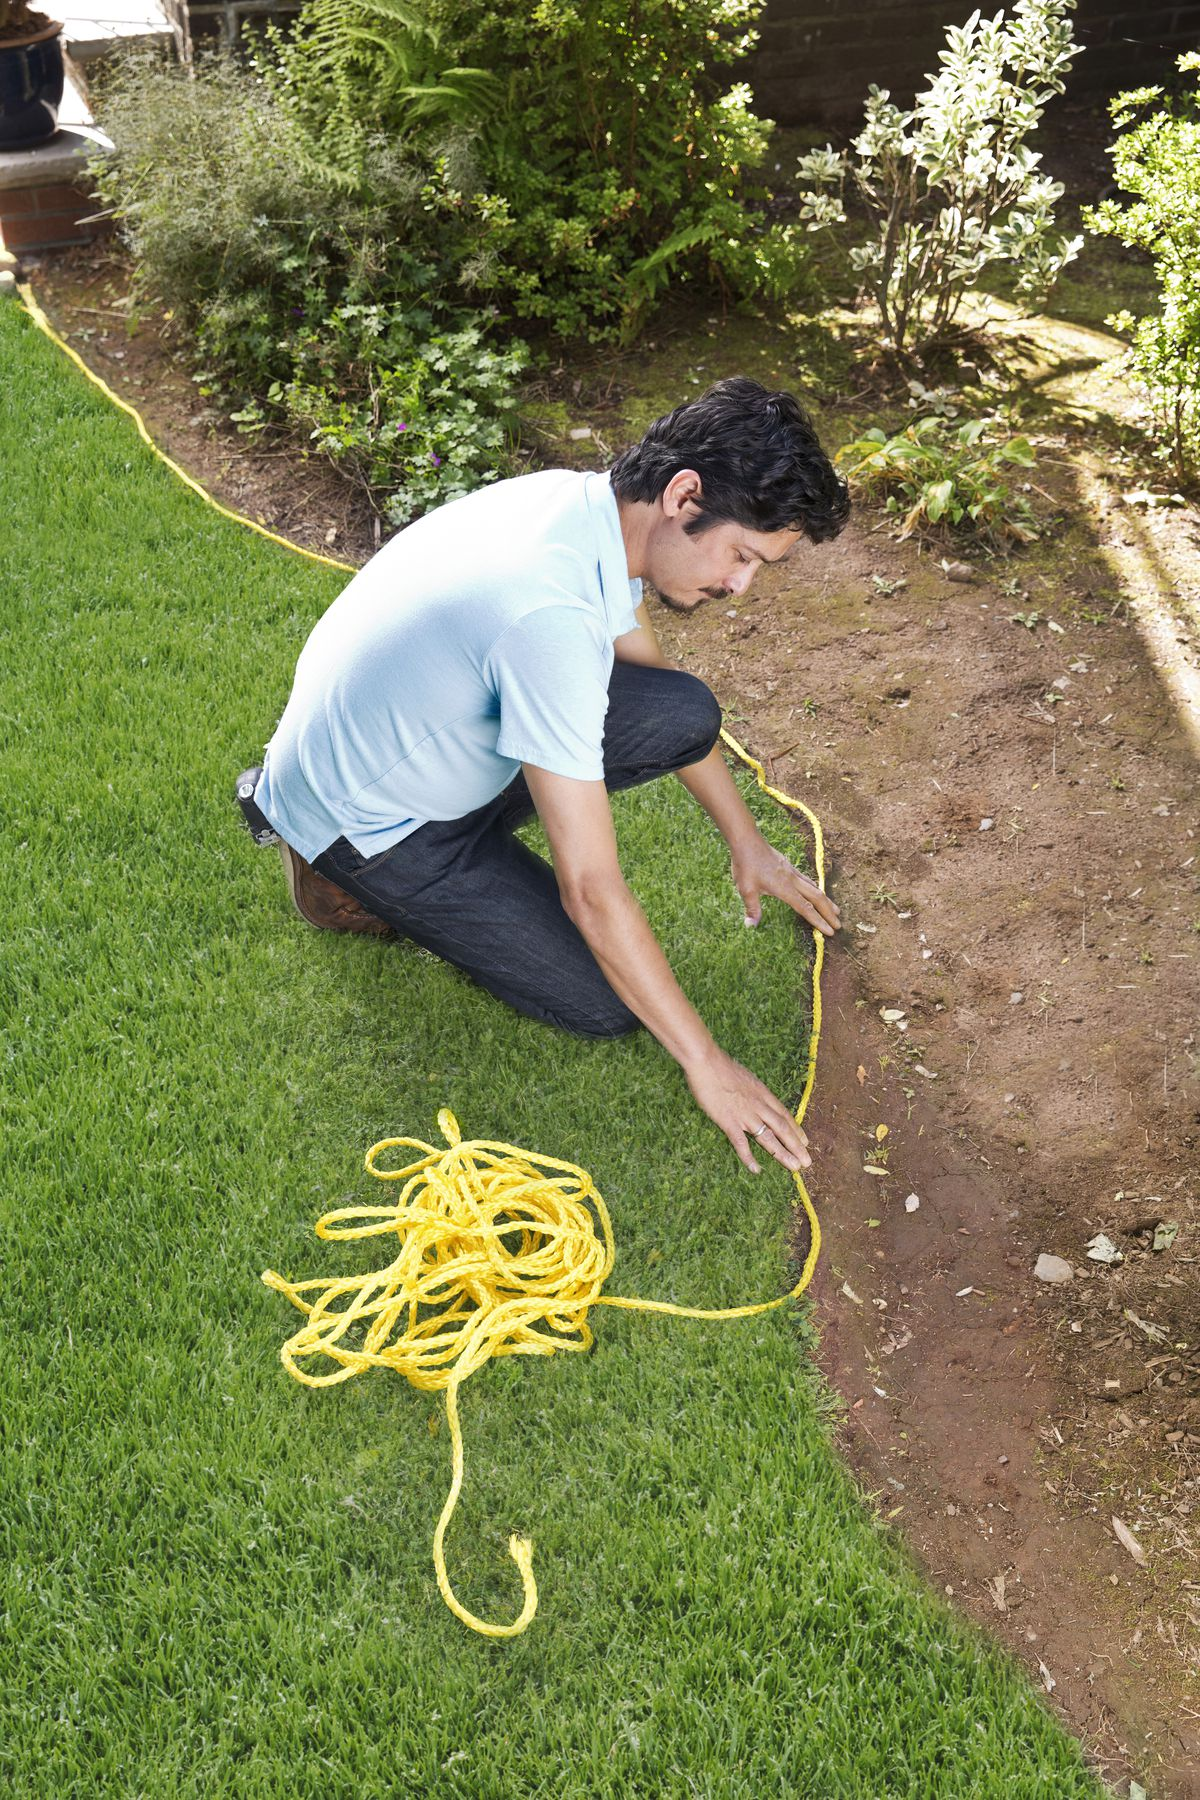 Man Lays Length Of Rope Along Edge Of Garden Bed